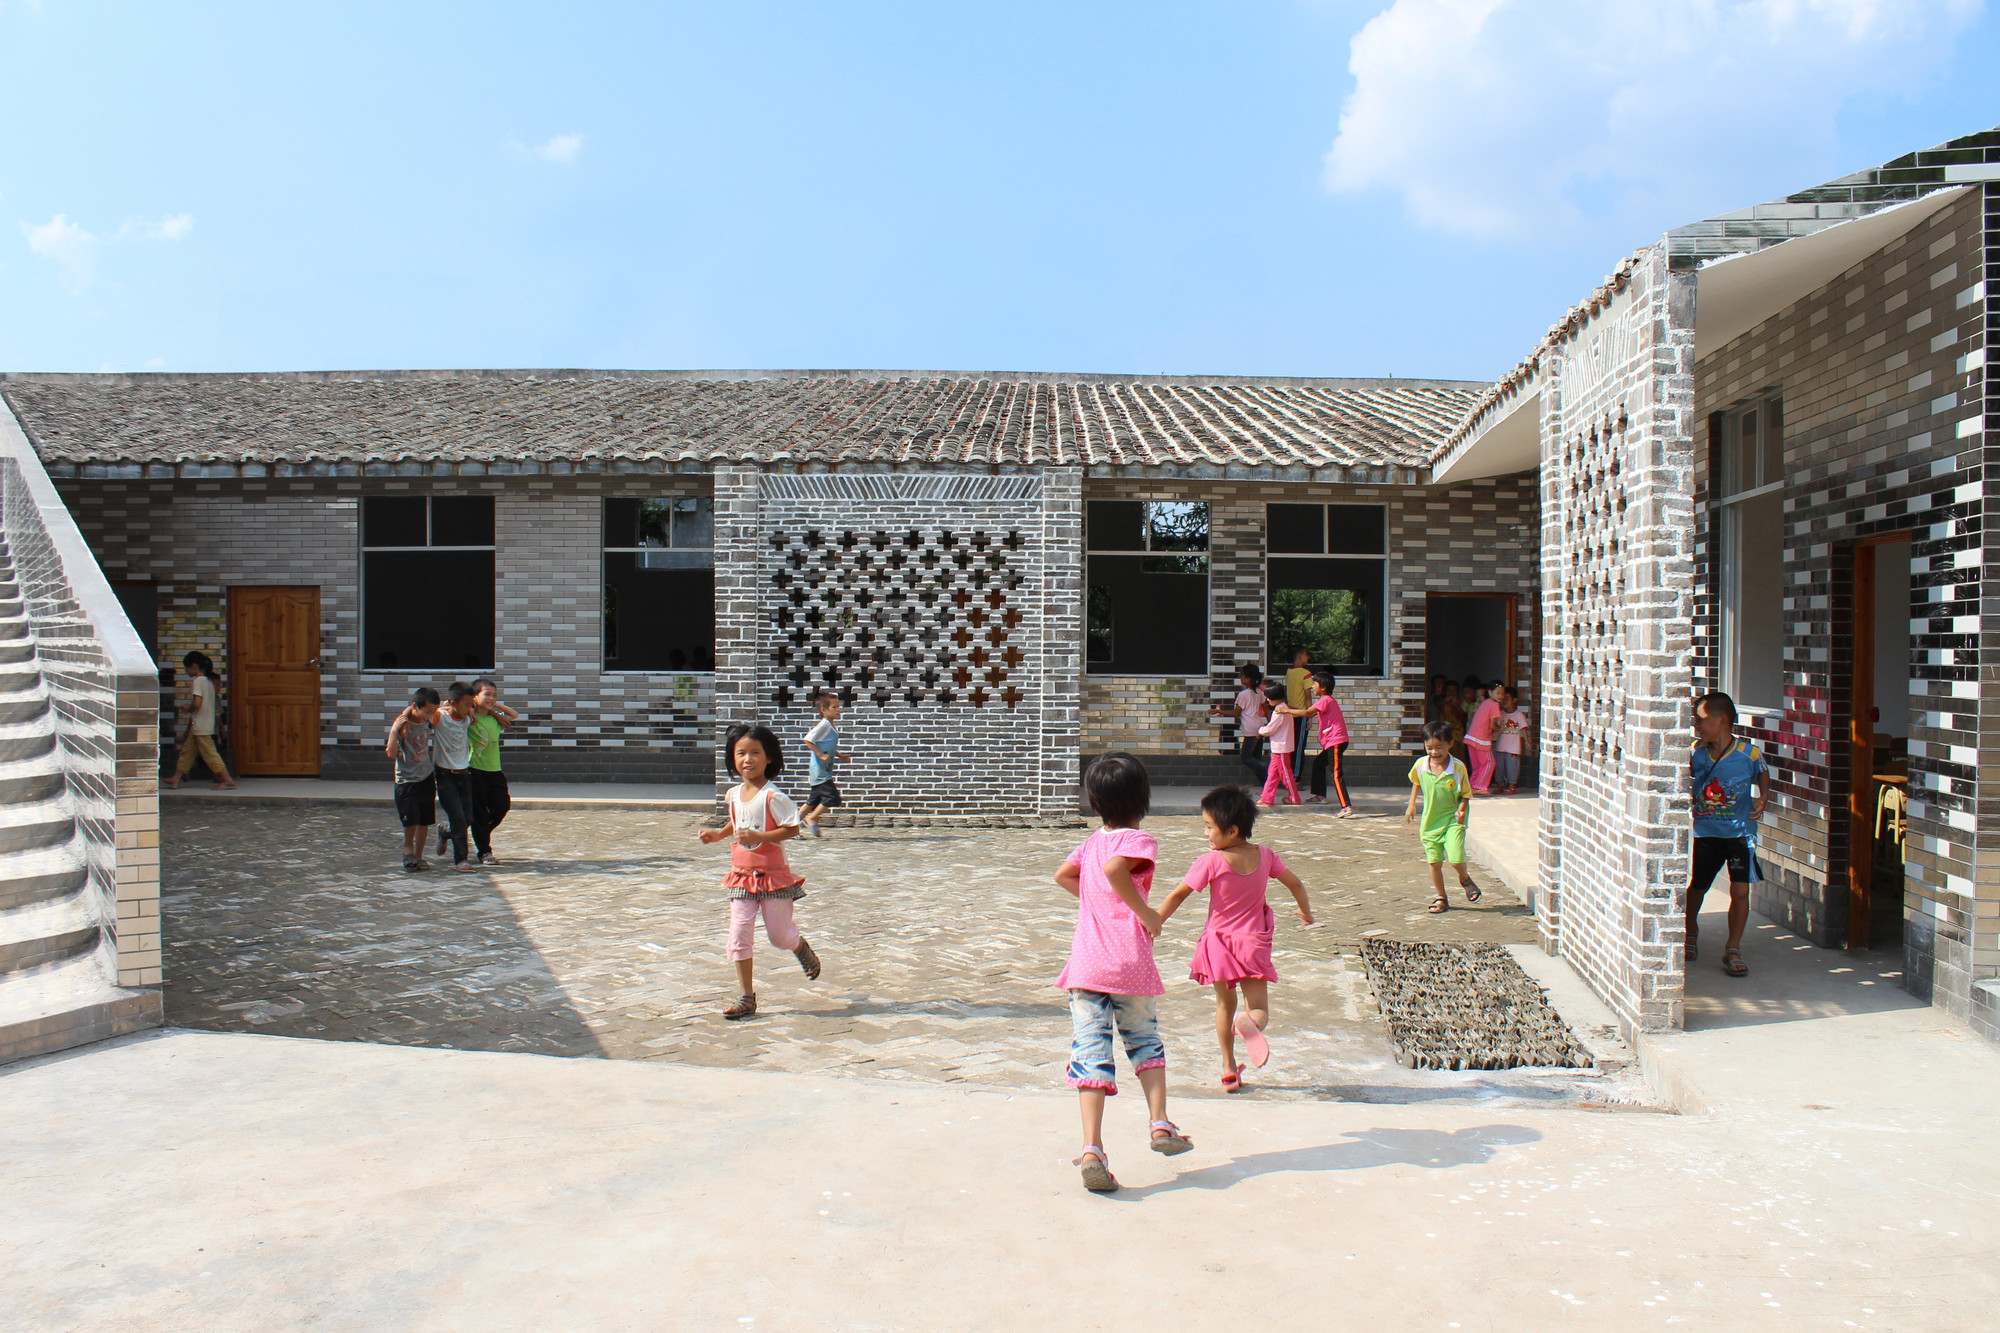 Mulan Primary School / Rural Urban Framework, Courtesy of Rural Urban Framework